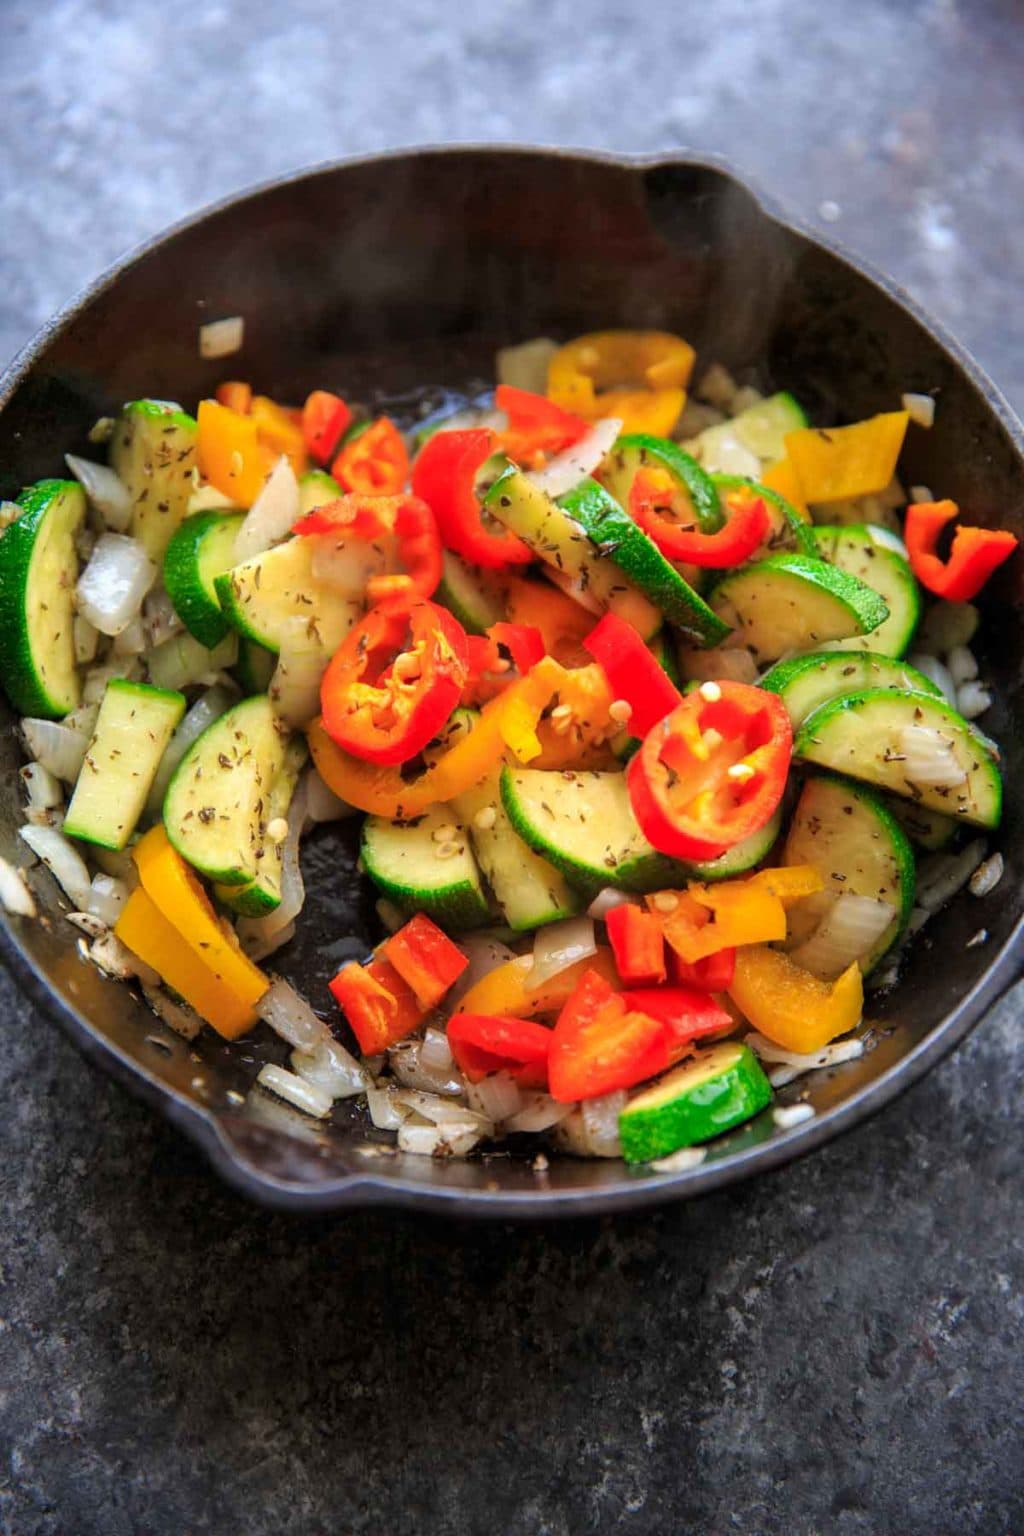 Sauteed vegetables with zucchini, onion, mini sweet peppers